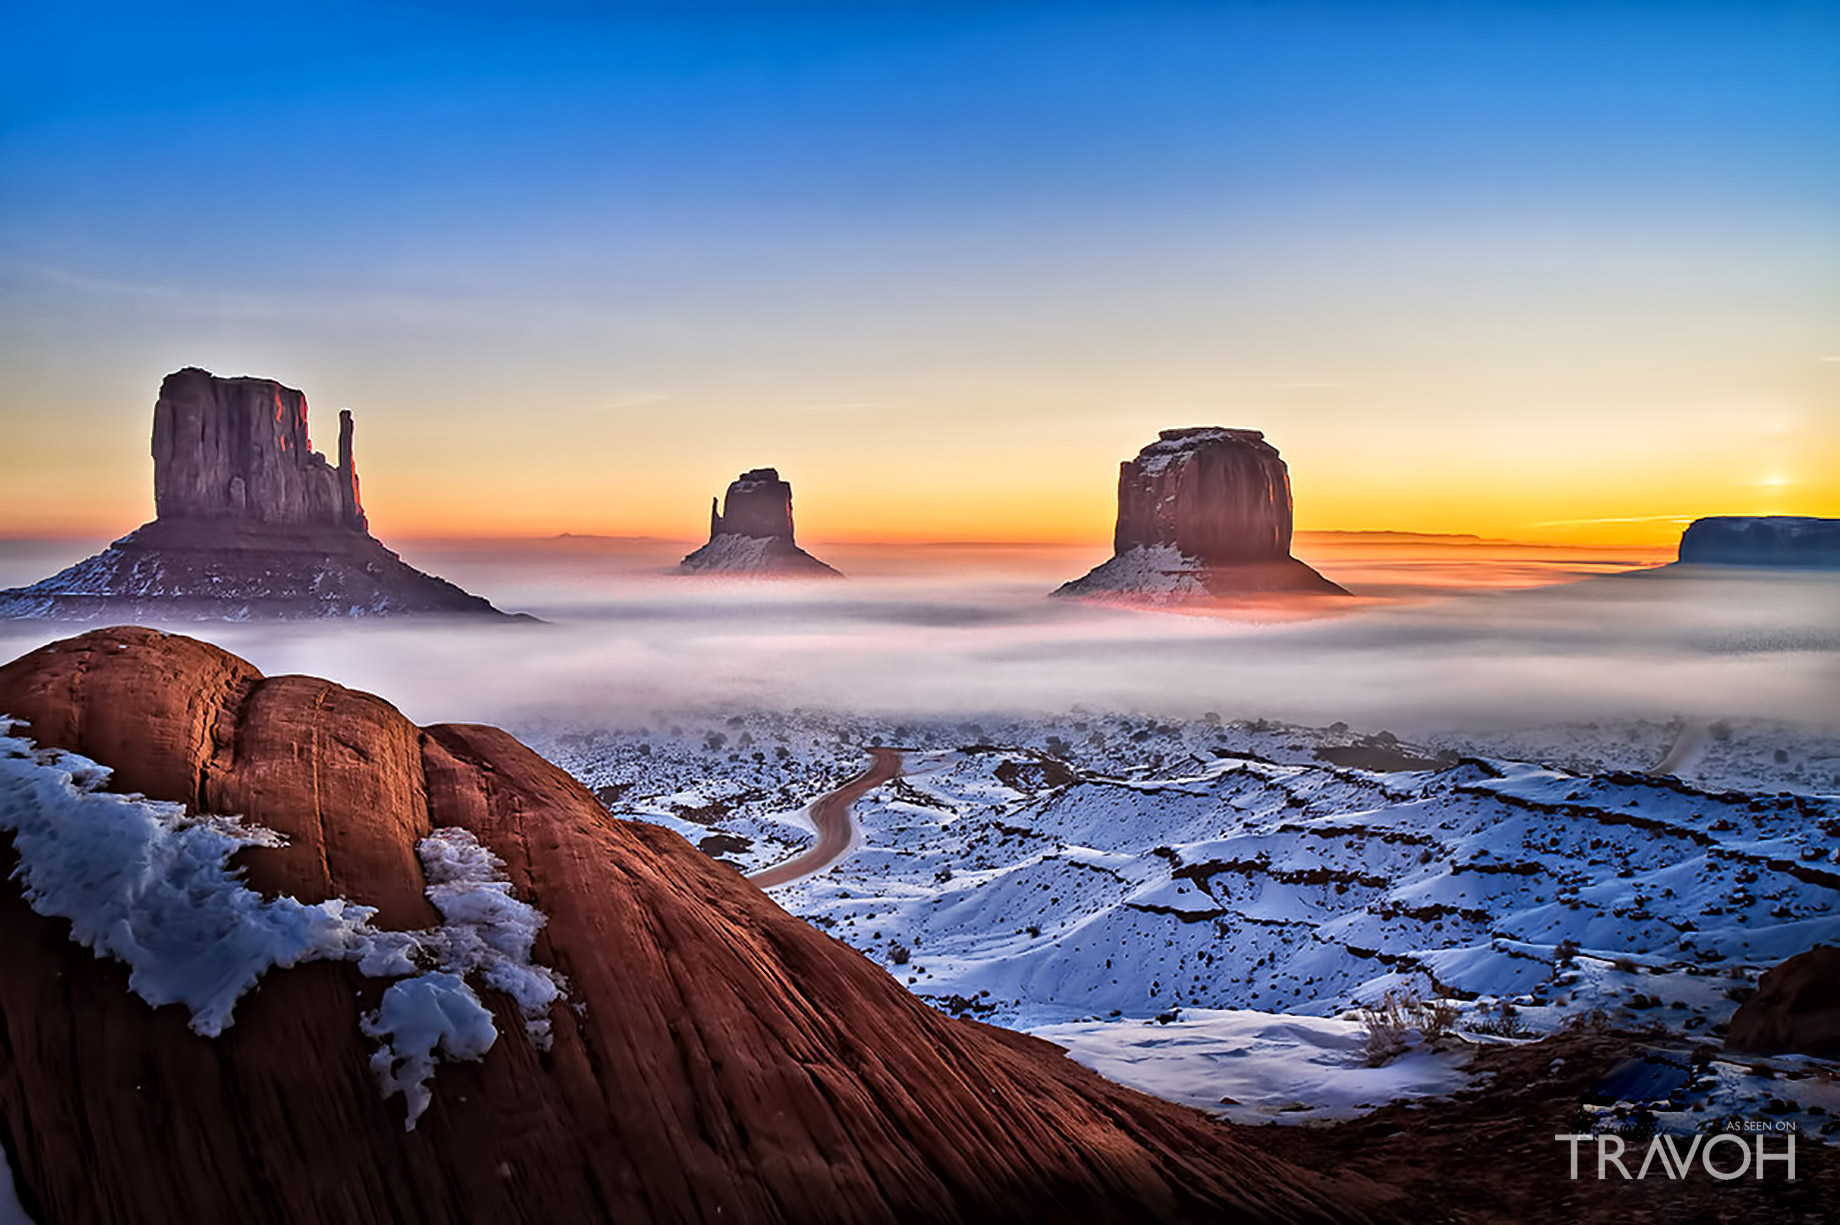 Monument Valley - A Daunting Region of the Colorado Plateau on the Arizona-Utah State Line